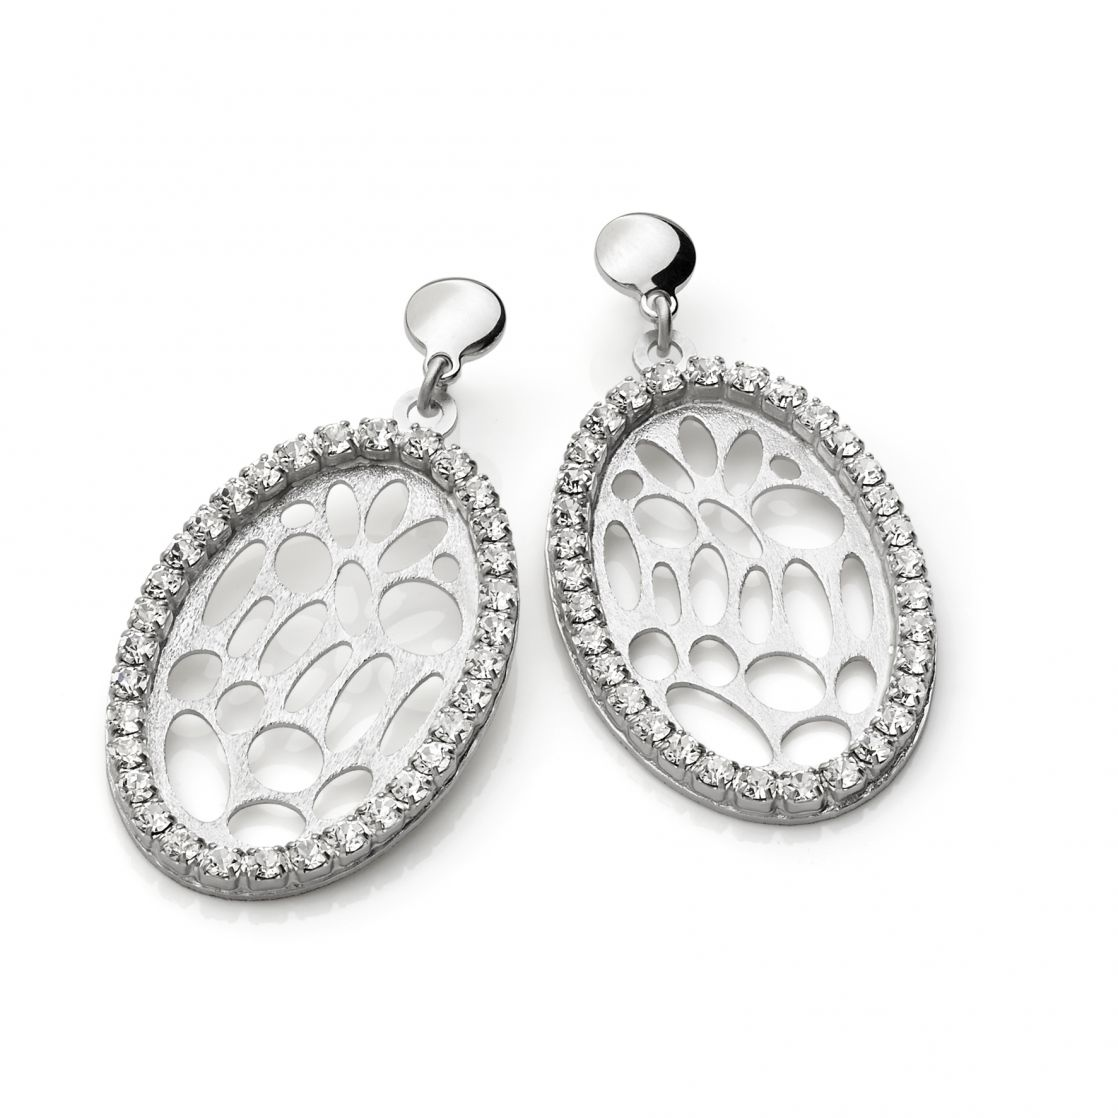 Oval drop earrings with rhodium plating and strass